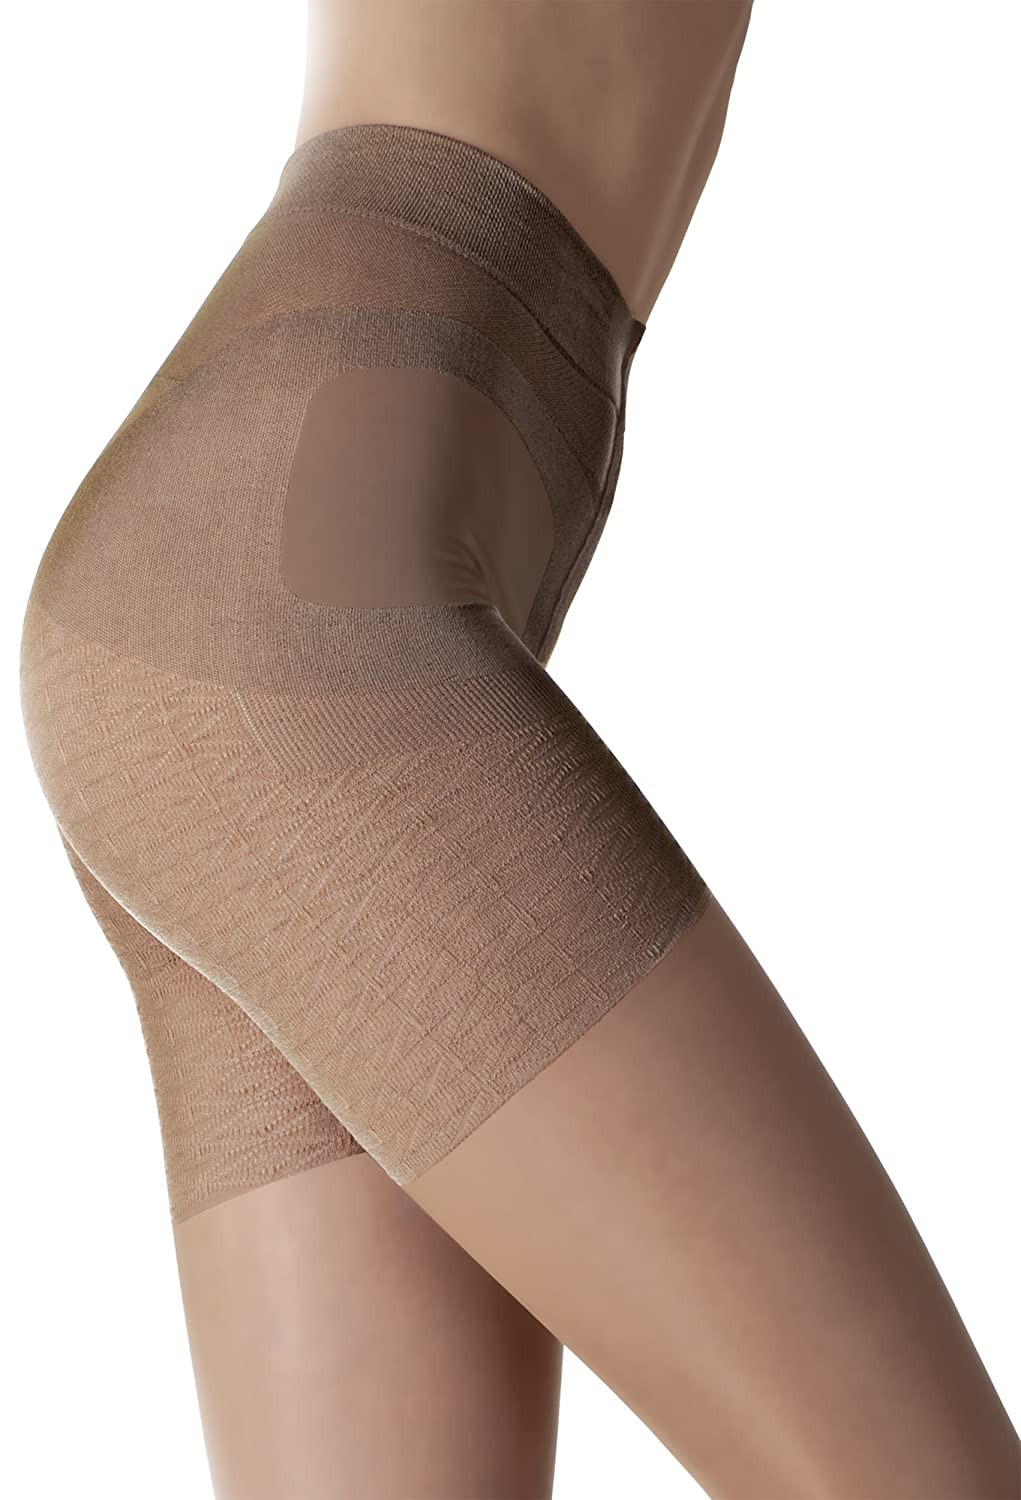 Fiore Luxury 20 Denier Shaping and Slimming Tights - Available in Black or Tan